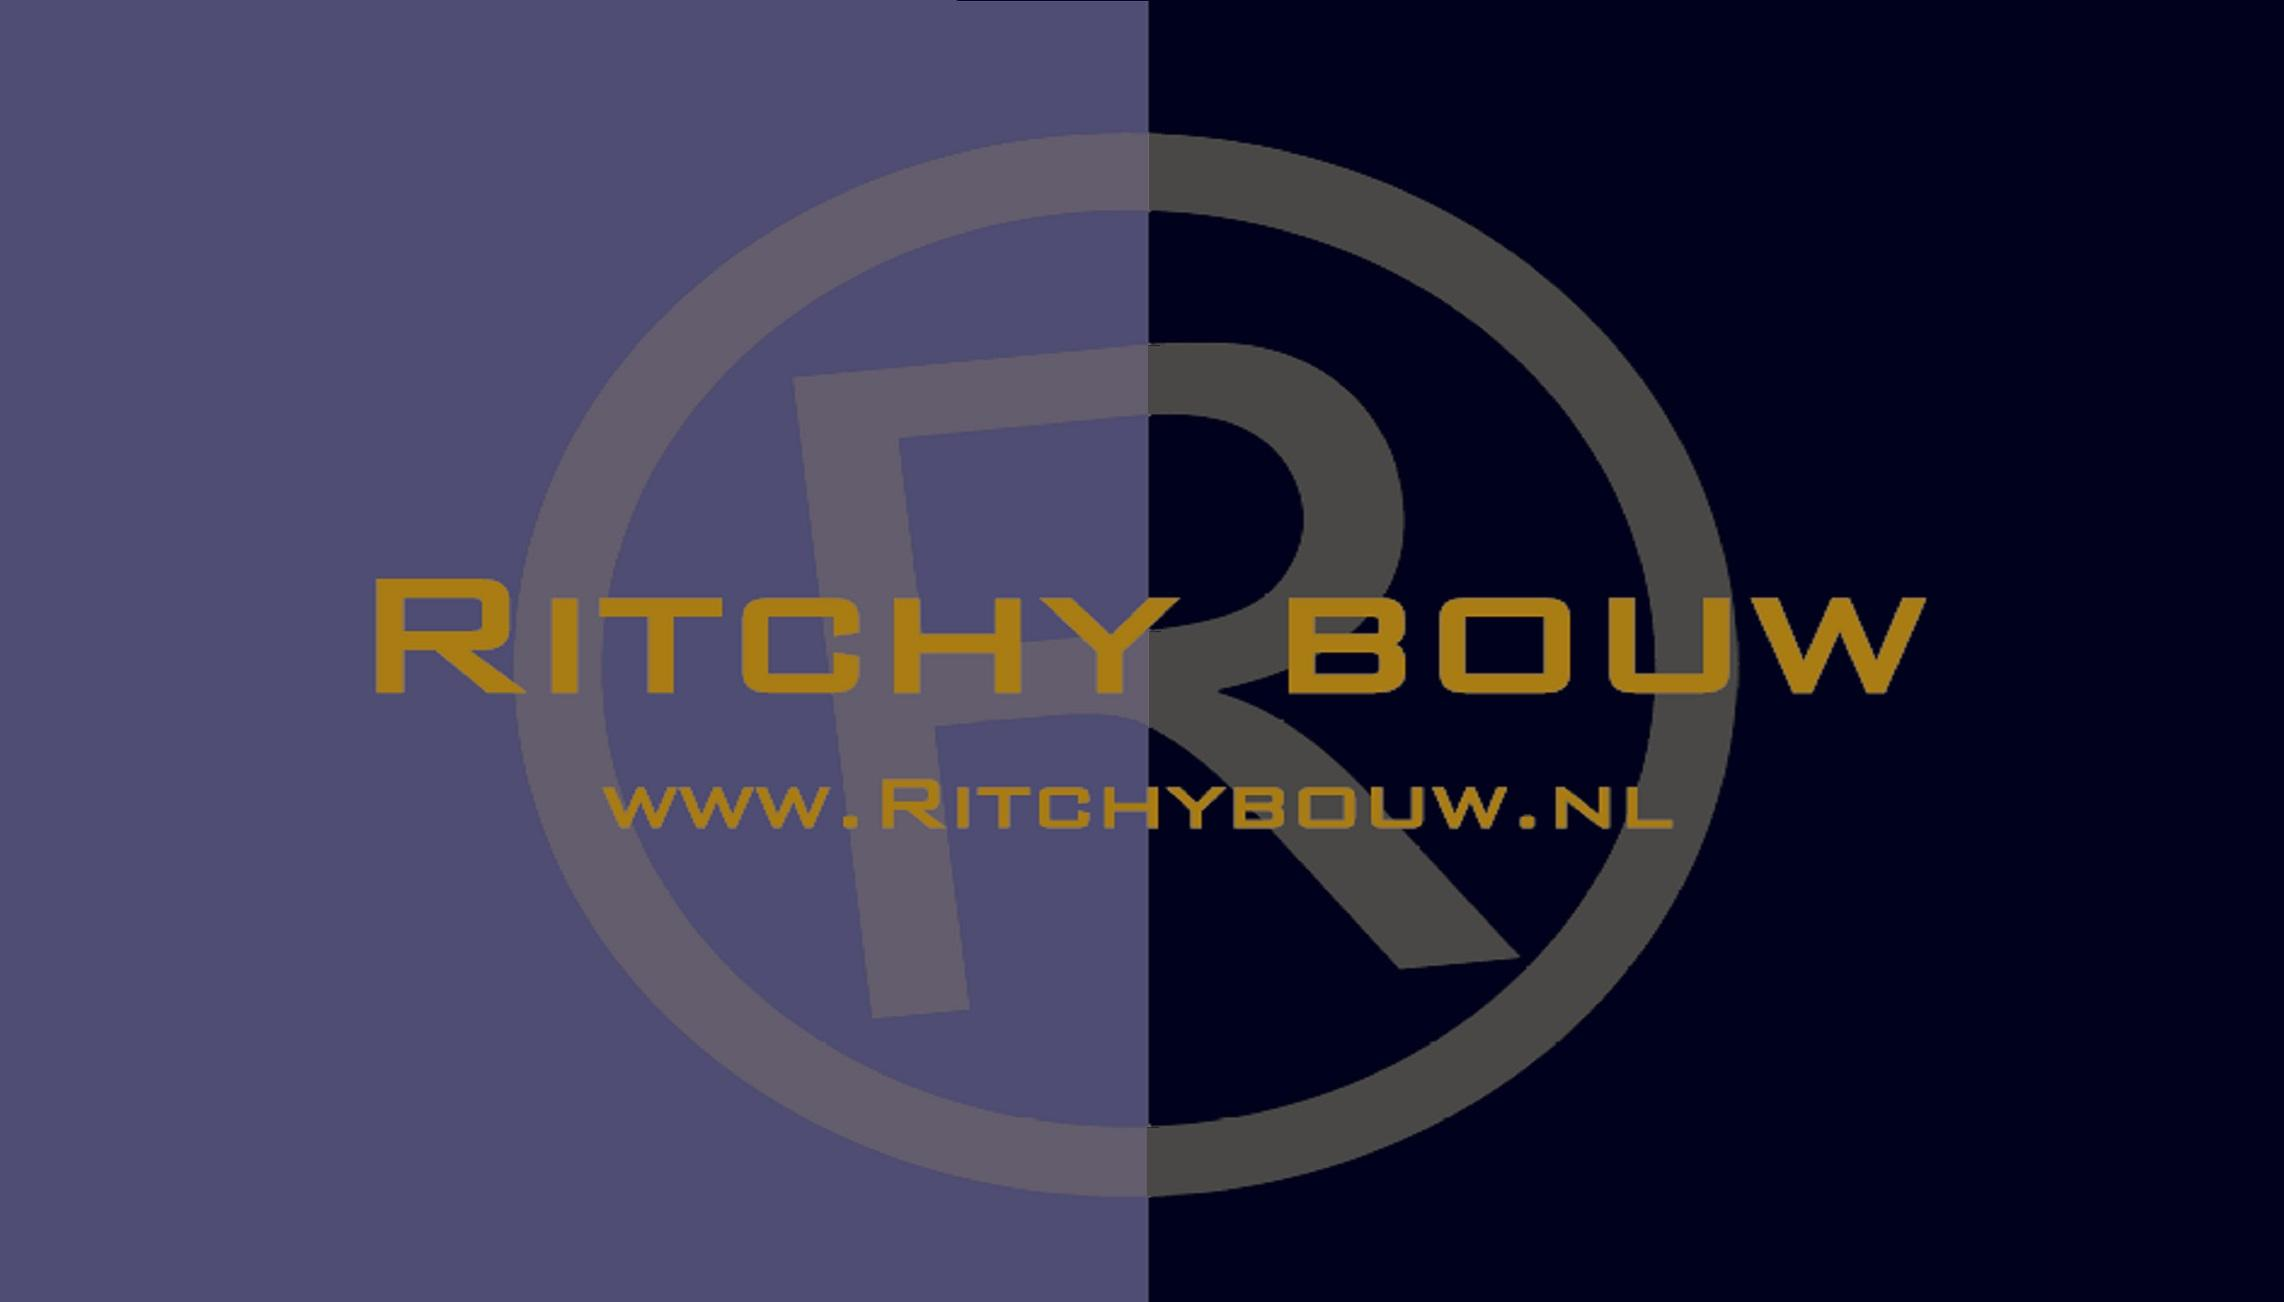 Ritchy Bouw